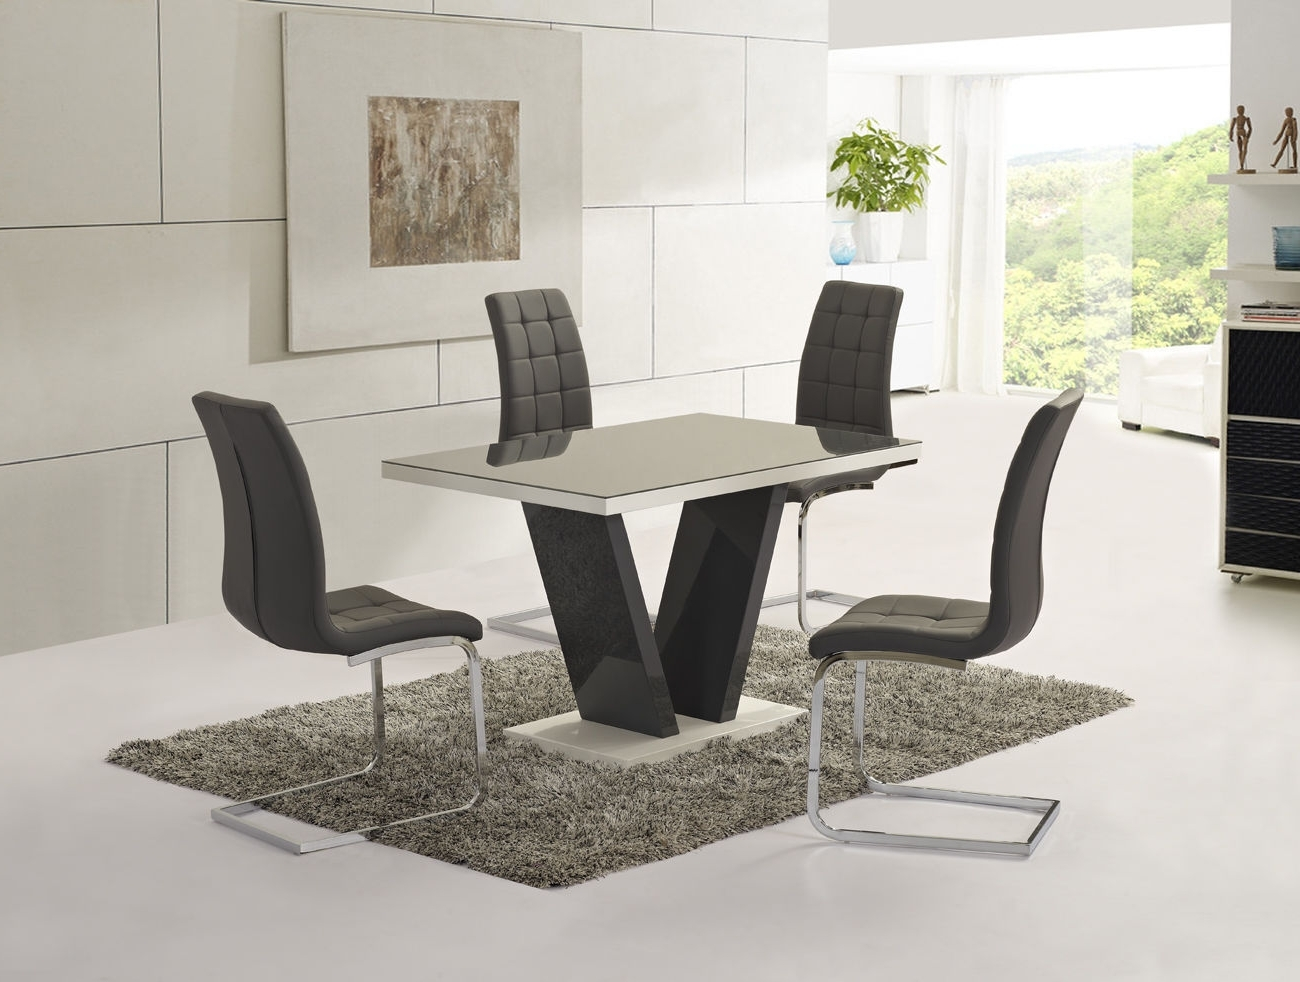 Most Popular Black Glass Dining Tables 6 Chairs With Regard To Ga Vico Gloss Grey Glass Top Designer 160Cm Dining Set – 4 6 Grey (View 16 of 25)